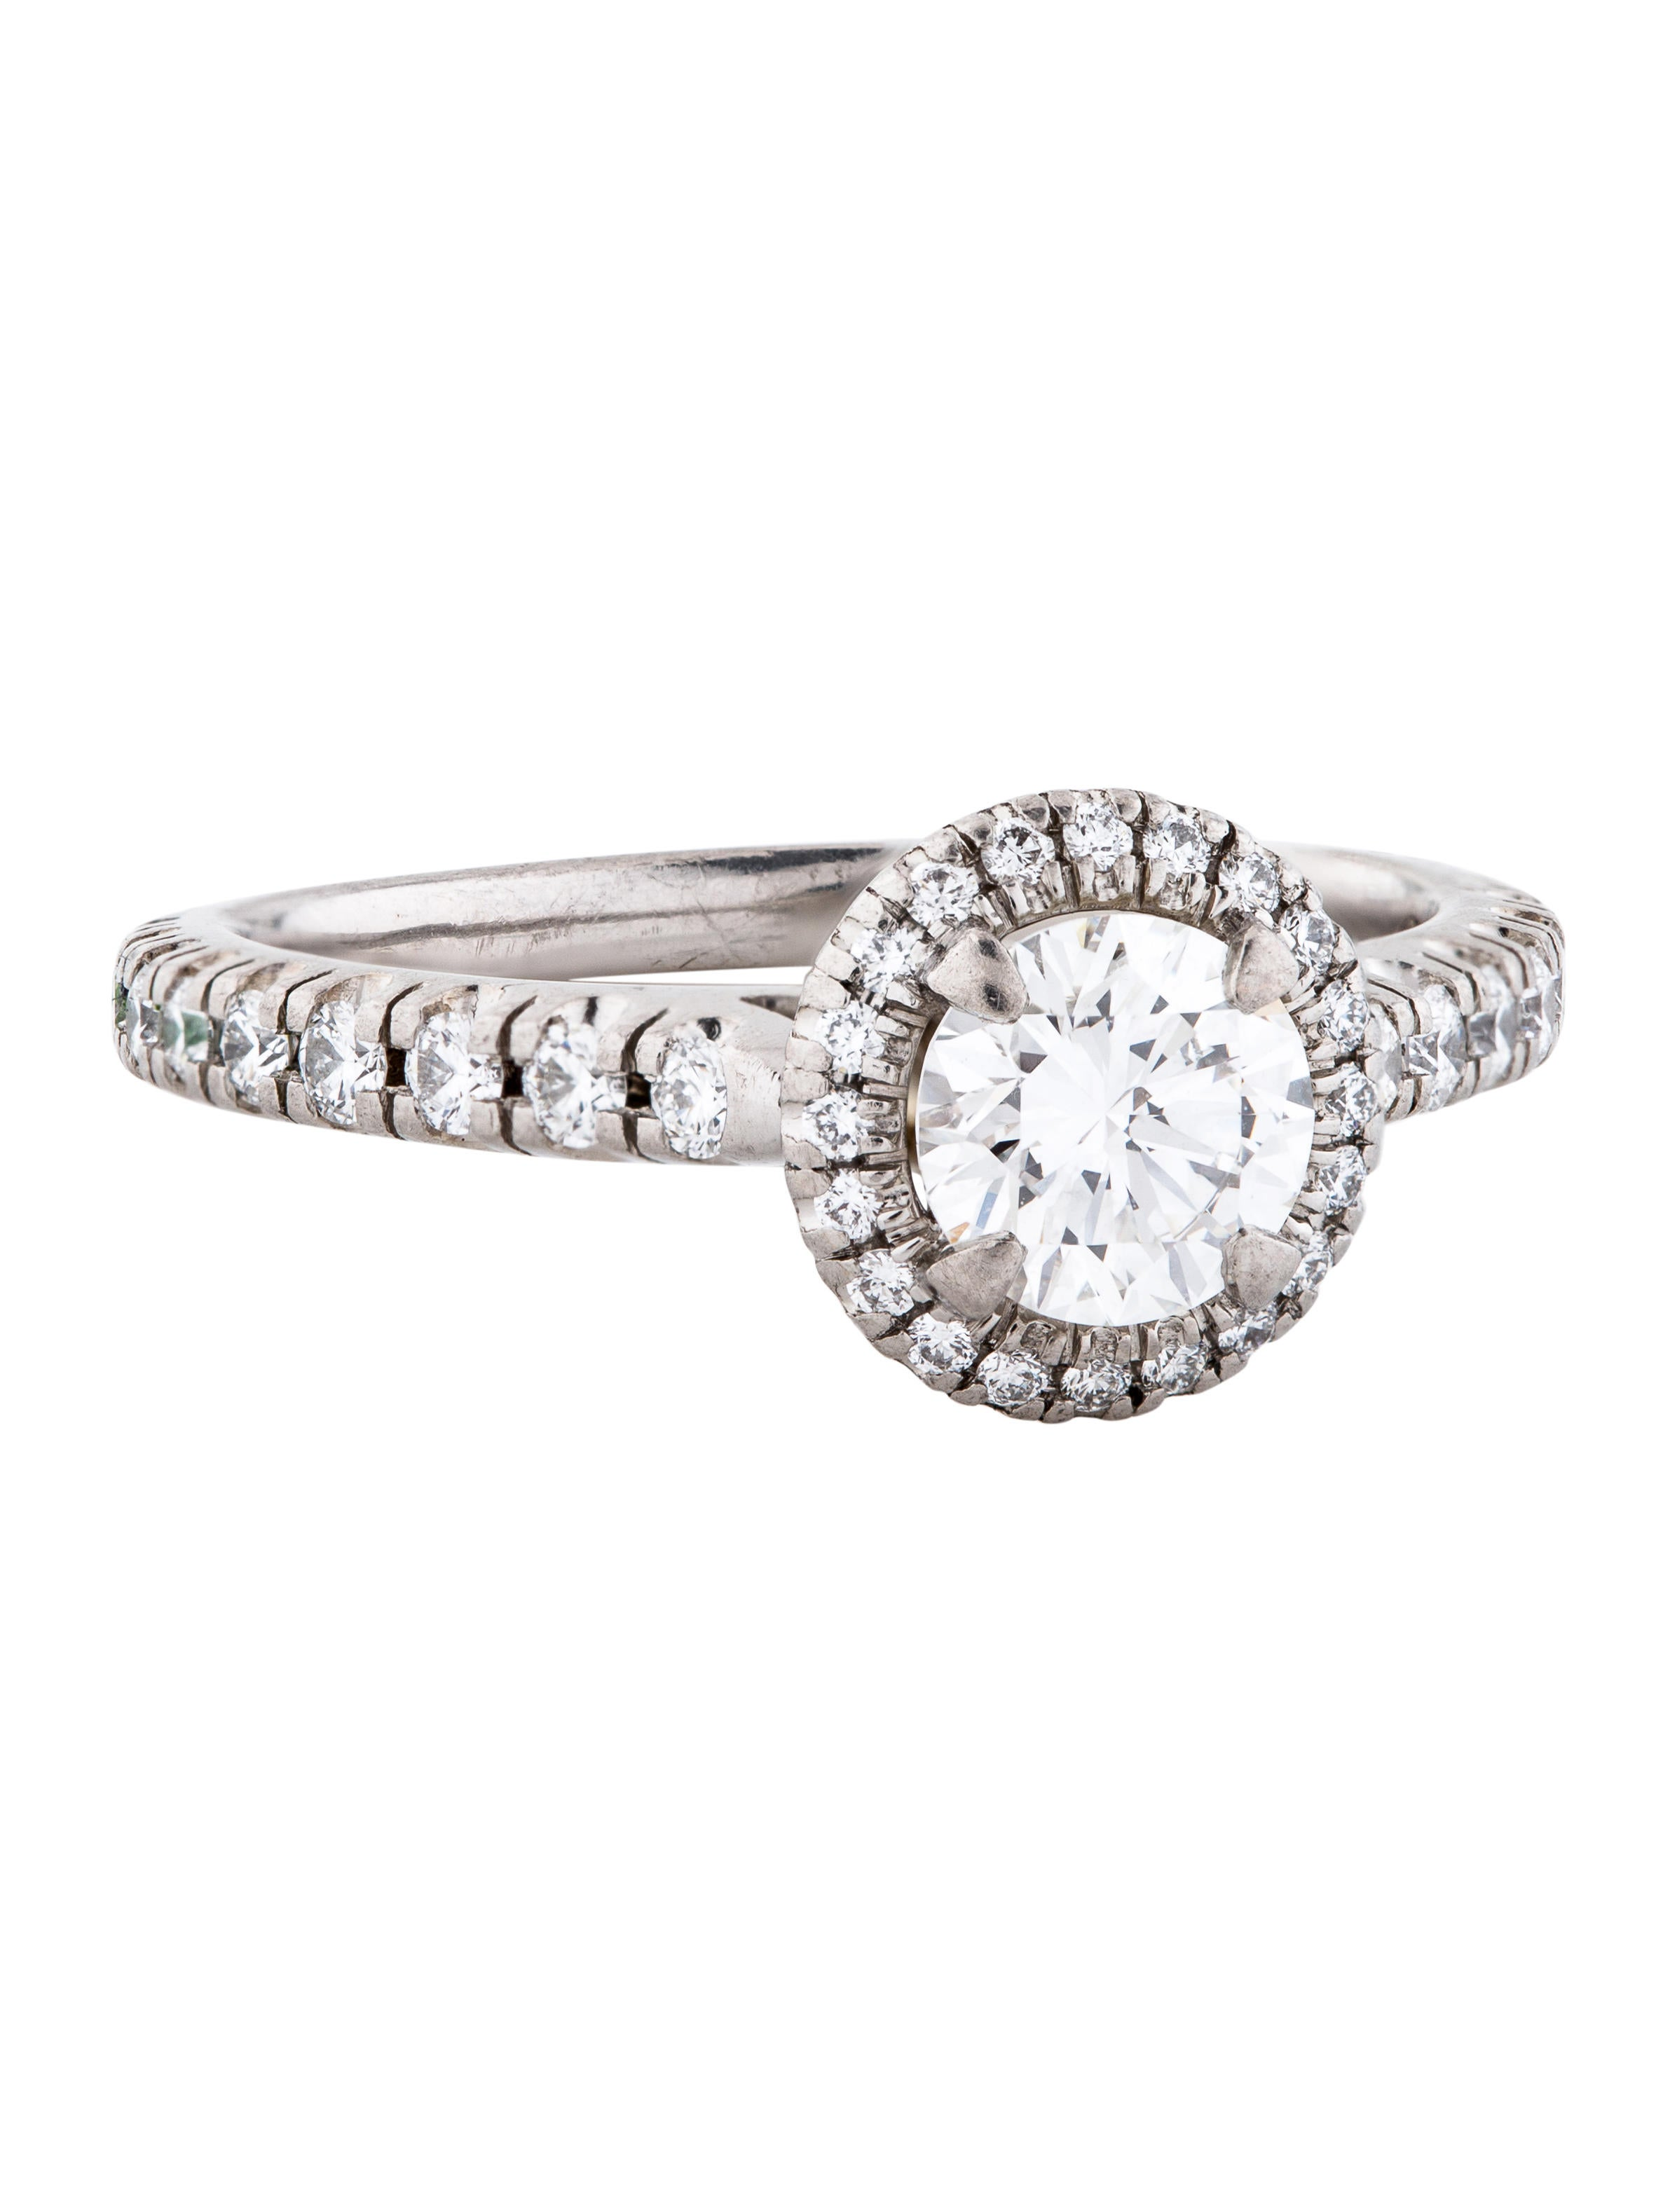 Cartier Destinee Solitaire Diamond Engagement Ring Rings